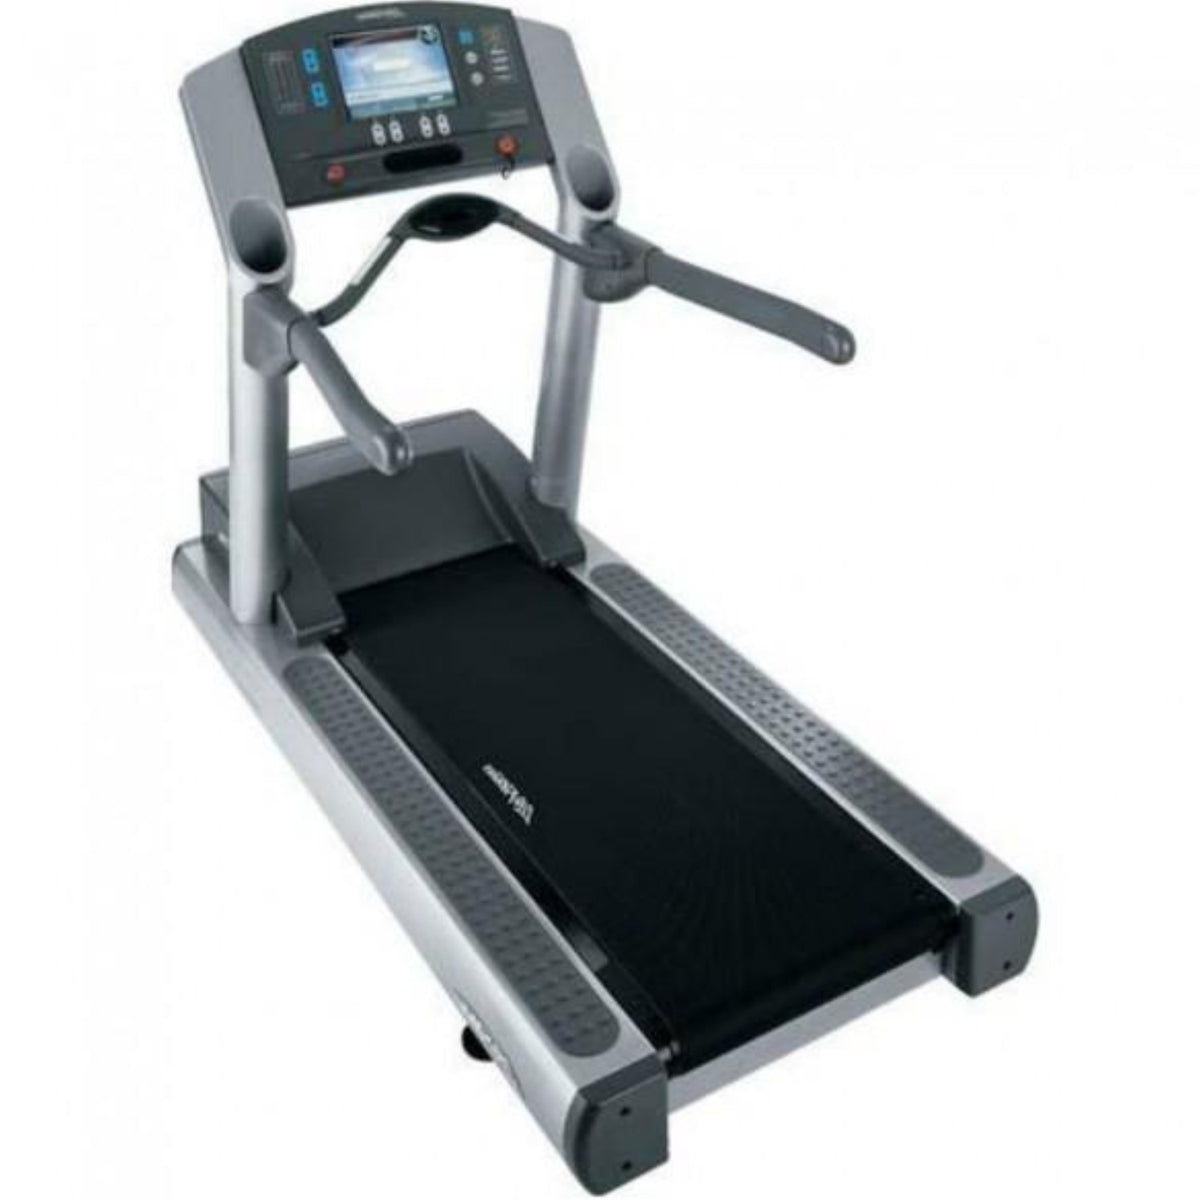 Life Fitness Treadmill Units: 70% Off At Cost Cutter Fitness